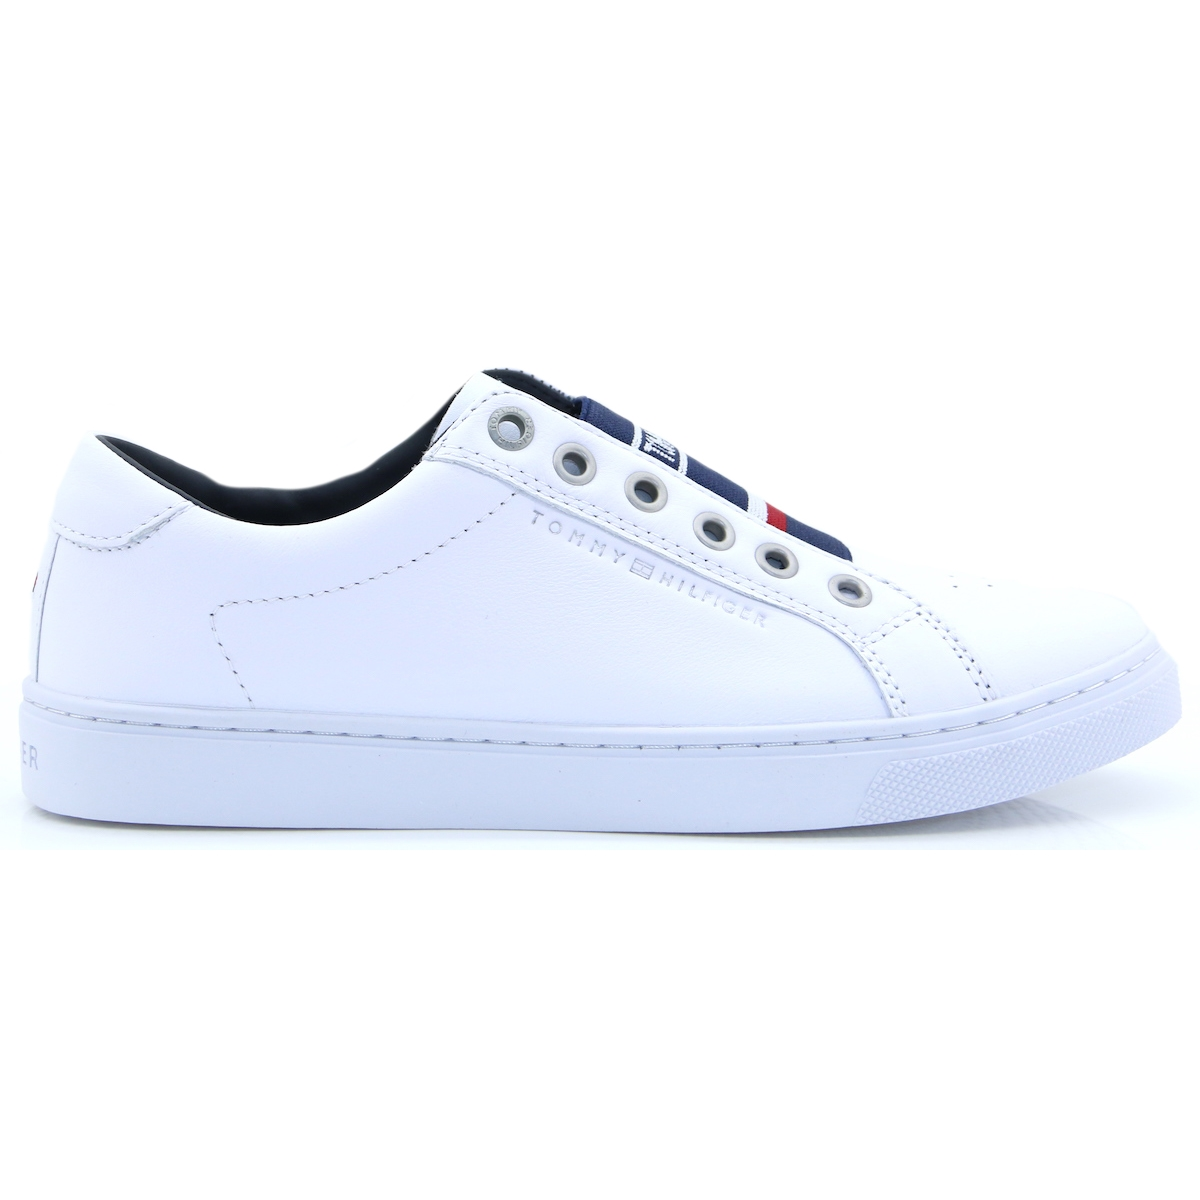 d4d03fa52 Elastic City Sneaker - Tommy Hilfiger WHITE SLIP ON TRAINERS. Tap to expand